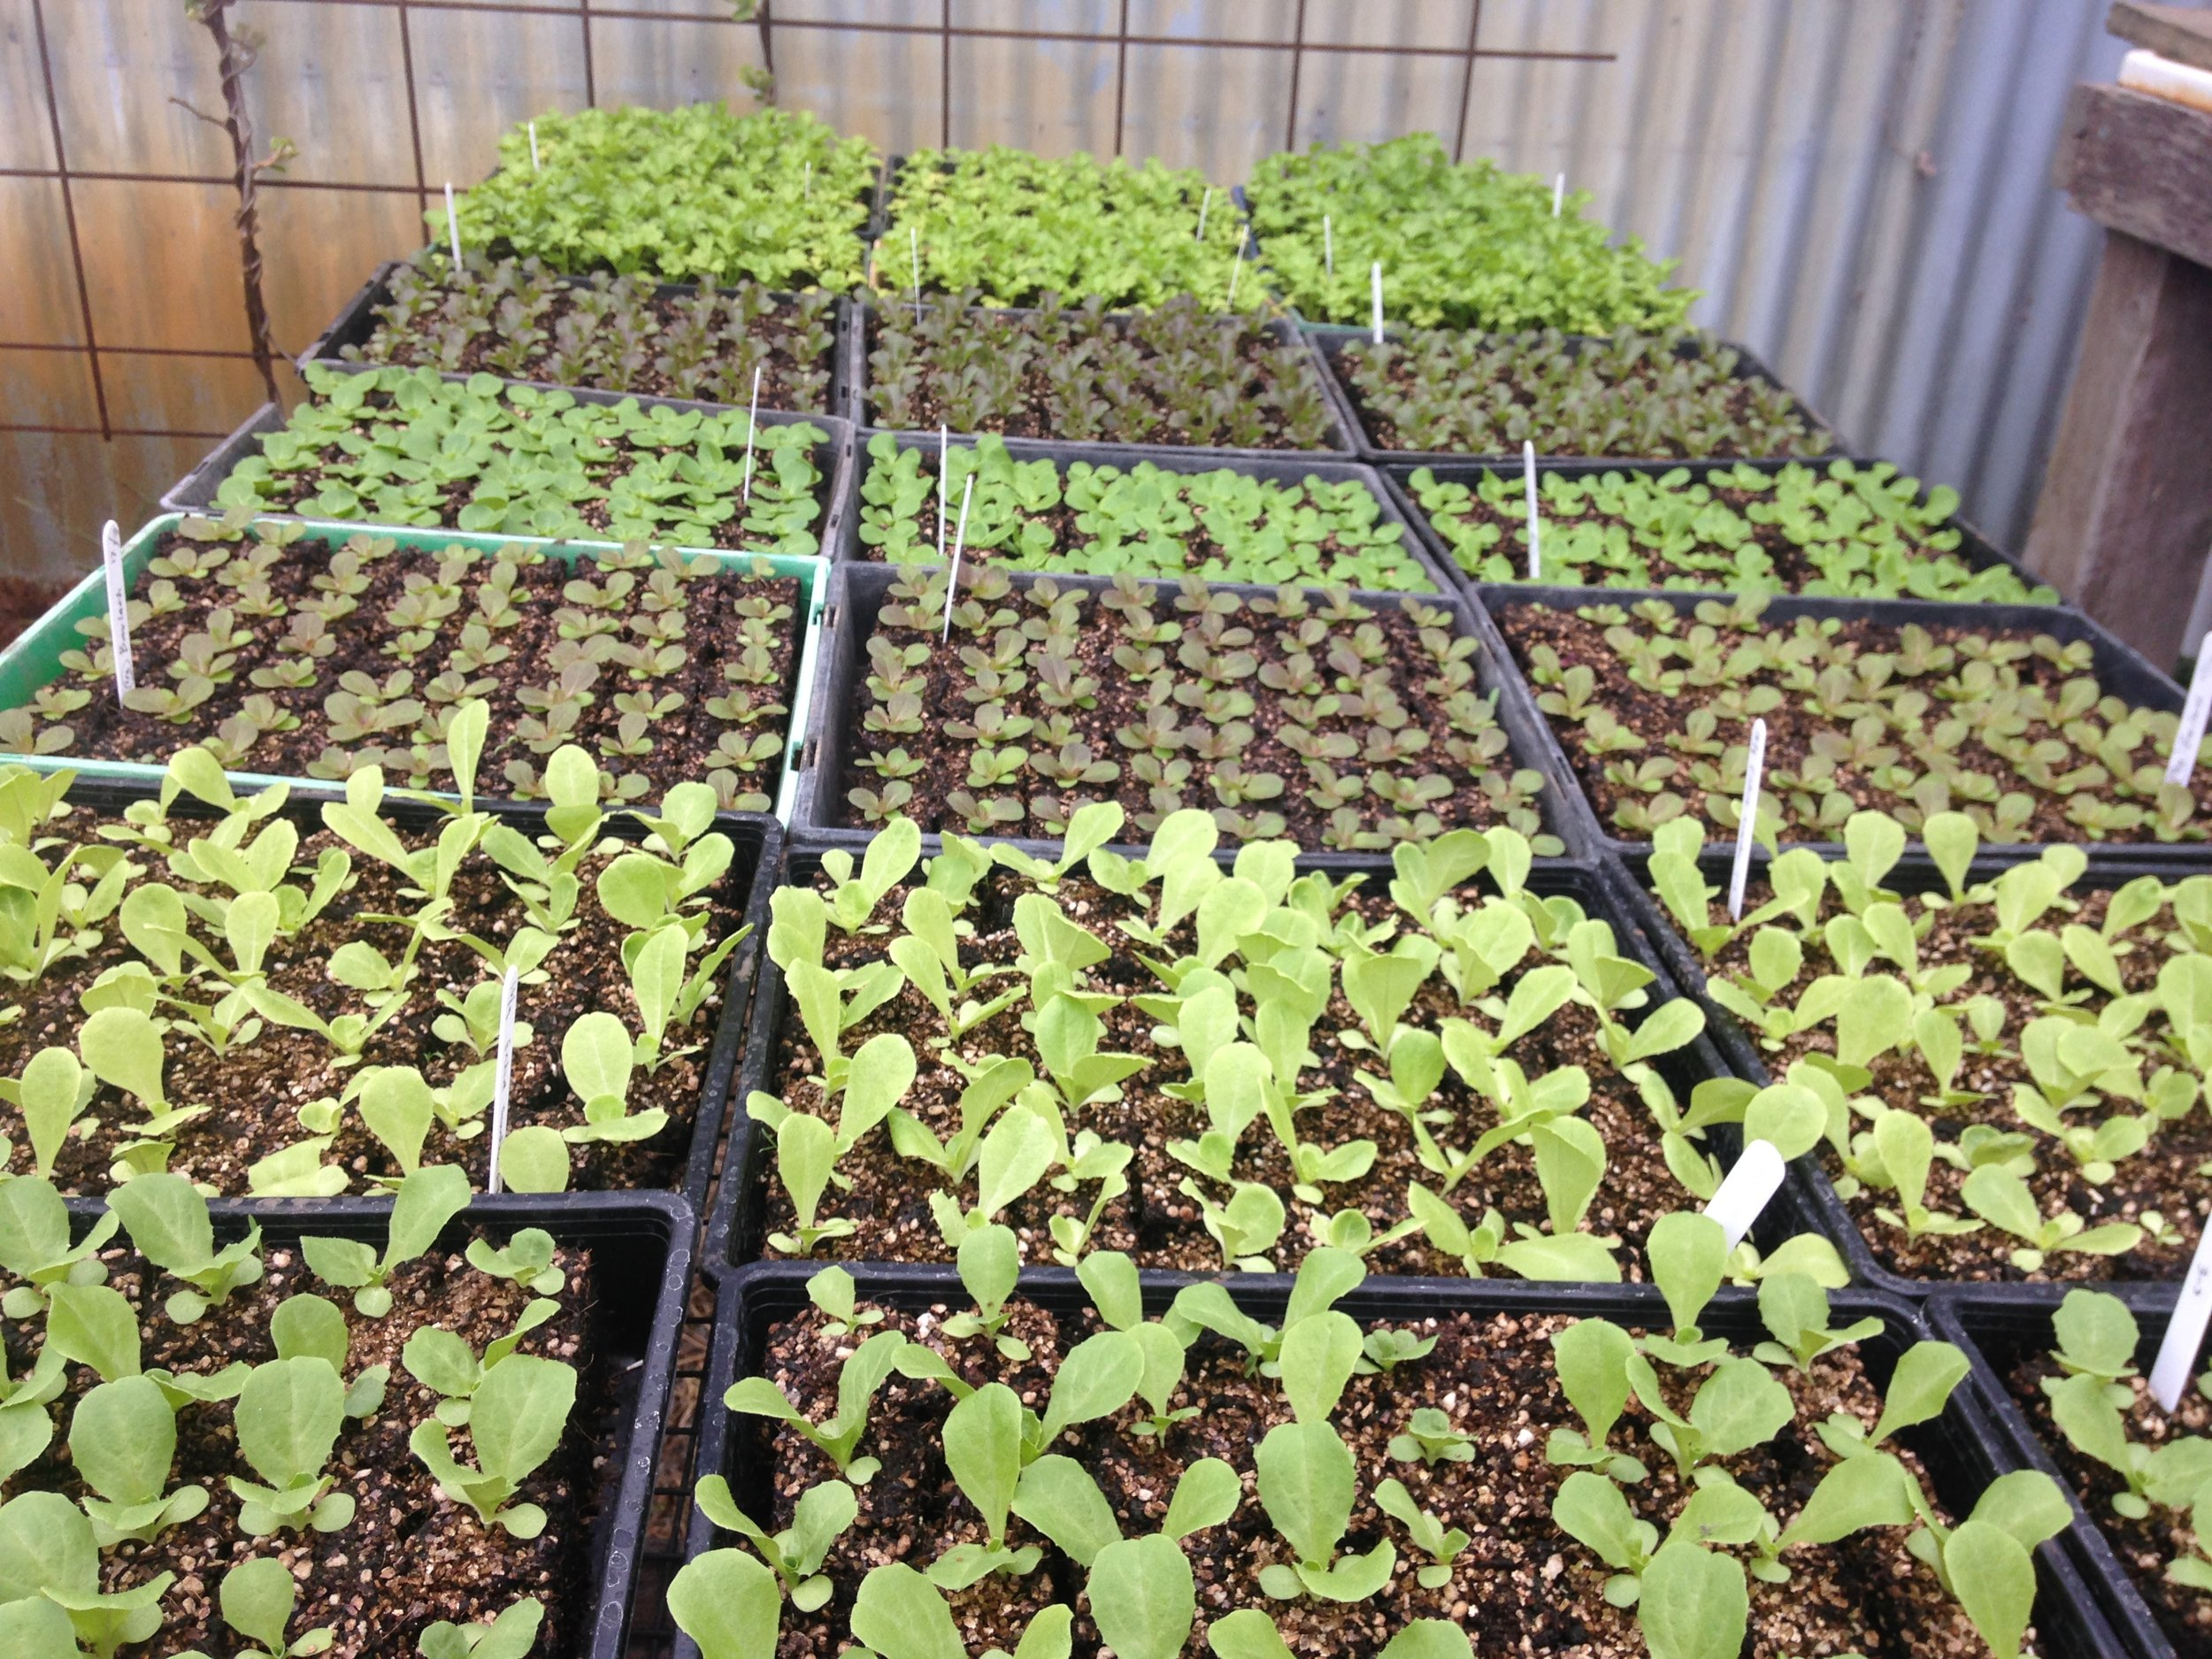 Lettuces, endive, escarole and celery - hardening off to prepare for field transplanting